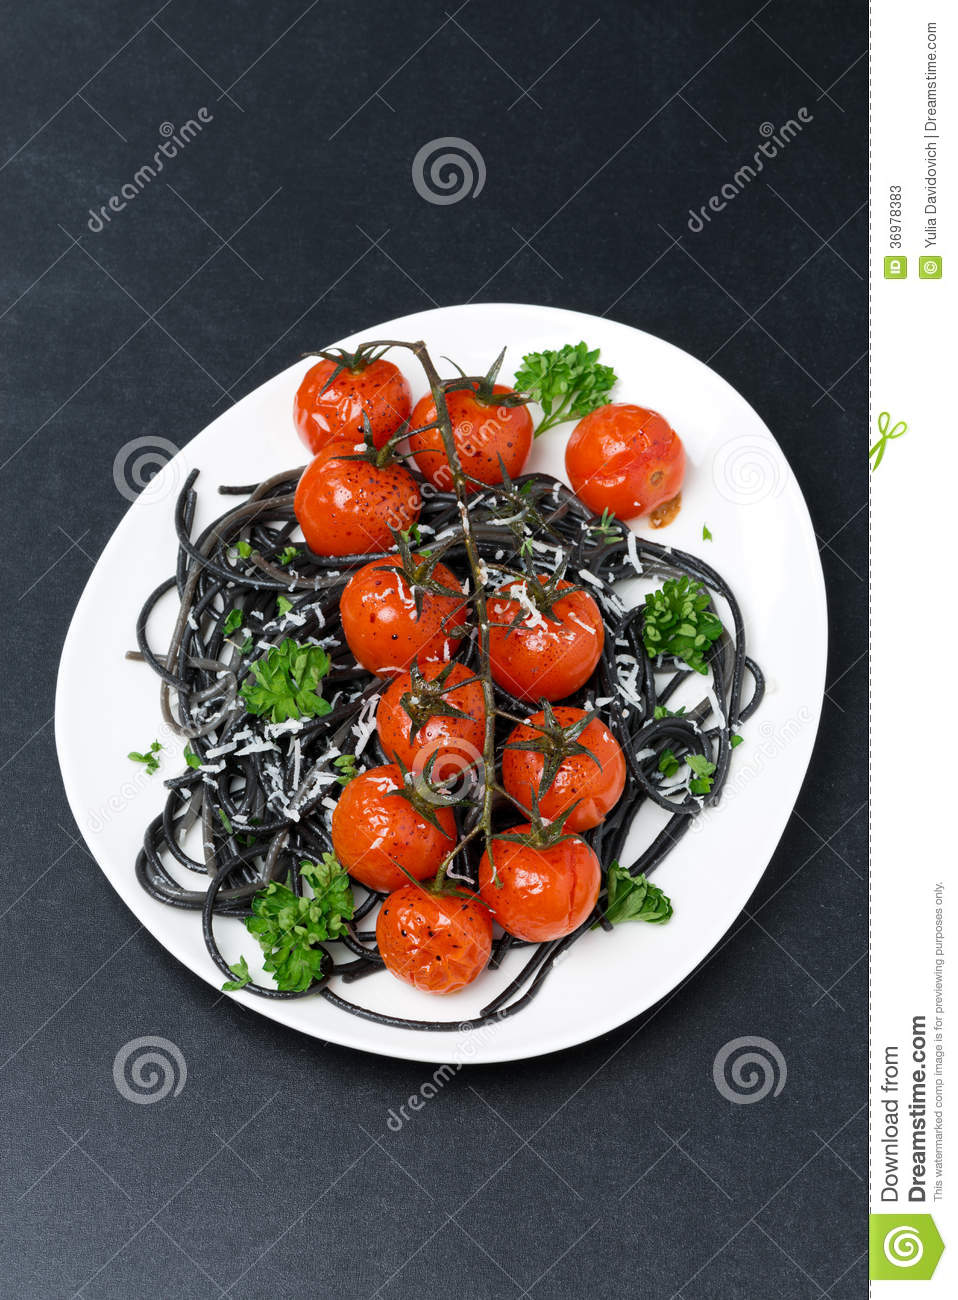 Plate Of Black Pasta With Baked Tomatoes, Parmesan Cheese Stock Photos ...